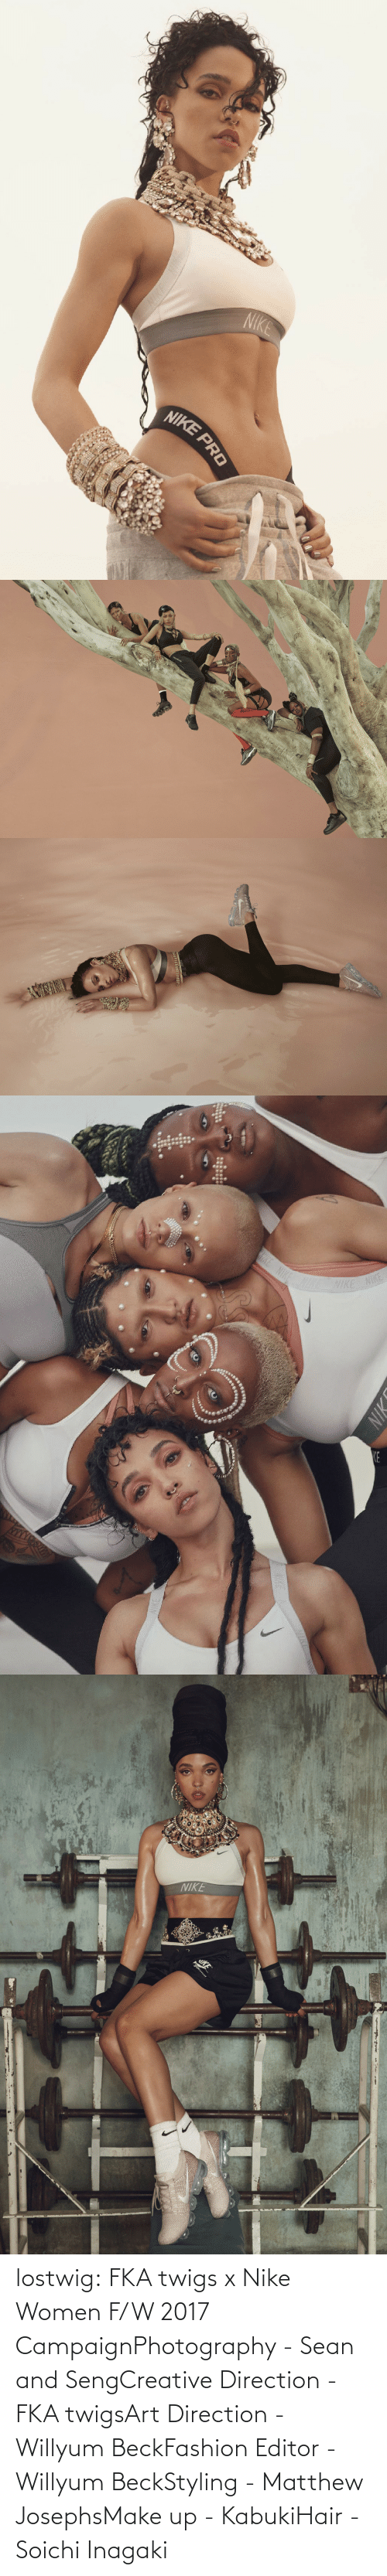 Nike: lostwig:  FKA twigs x Nike Women F/W 2017 CampaignPhotography - Sean and SengCreative Direction - FKA twigsArt Direction - Willyum BeckFashion Editor - Willyum BeckStyling - Matthew JosephsMake up - KabukiHair - Soichi Inagaki